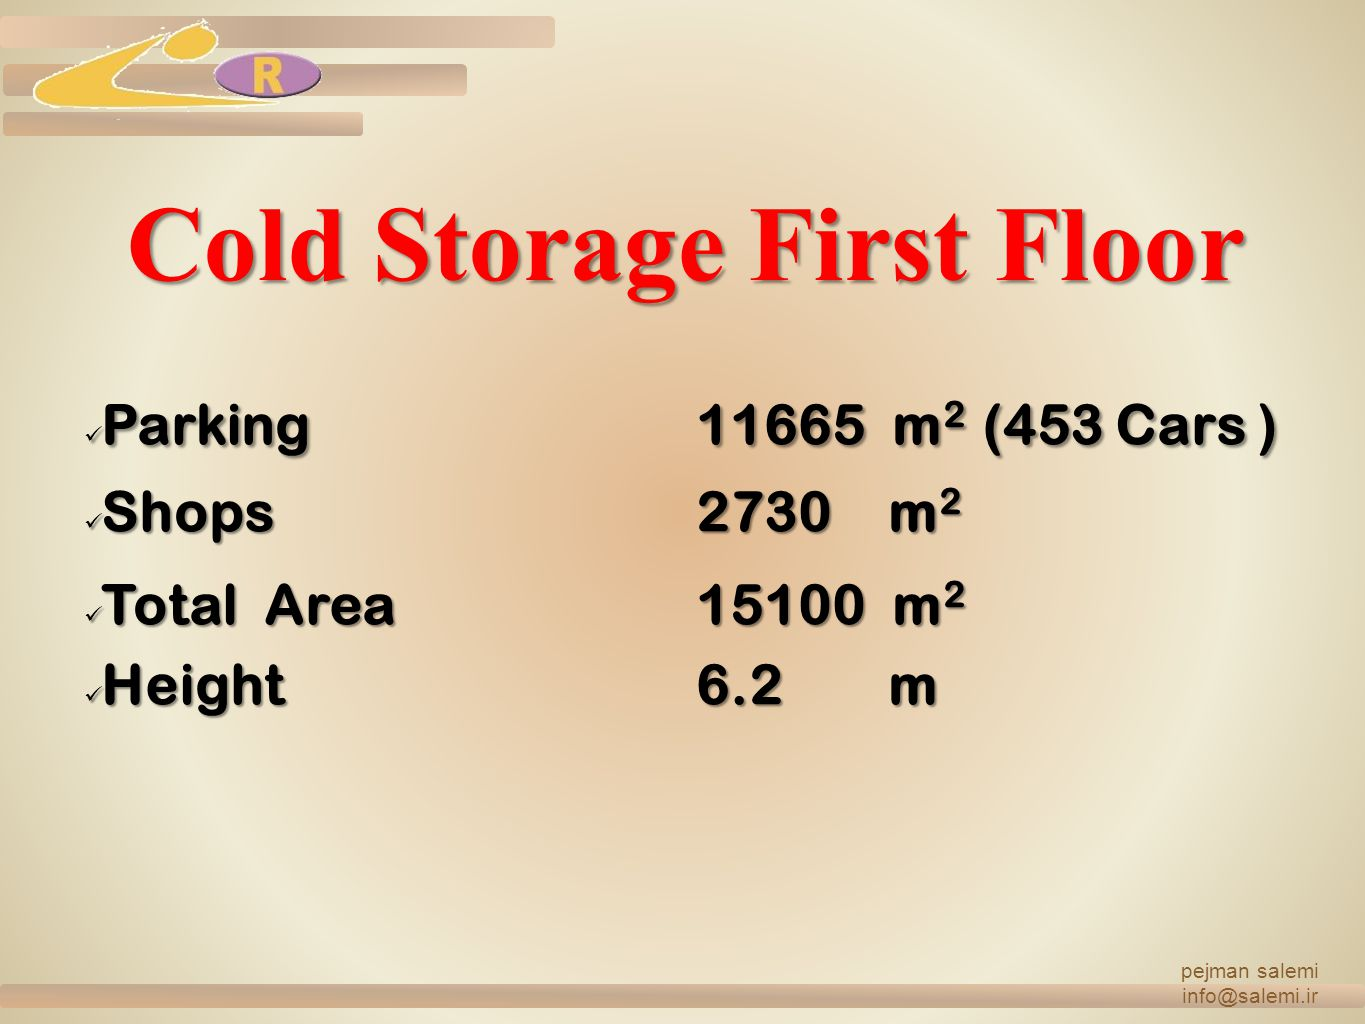 Cold Storage First Floor